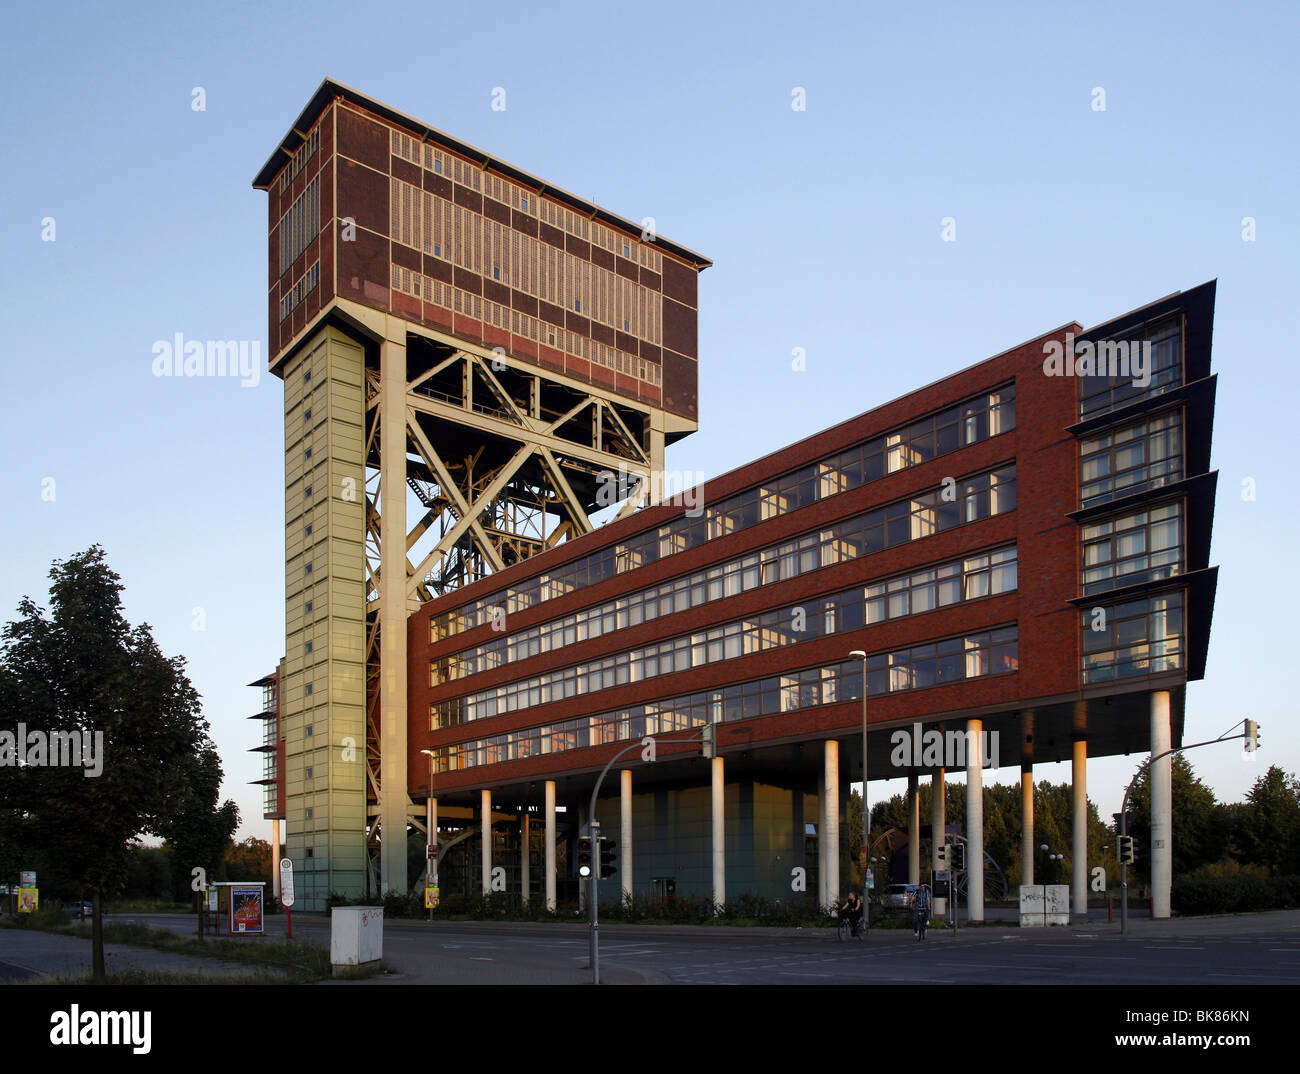 Hammerhead tower of the former Zeche Minister Stein mine, today office building and service center, Dortmund, North - Stock Image